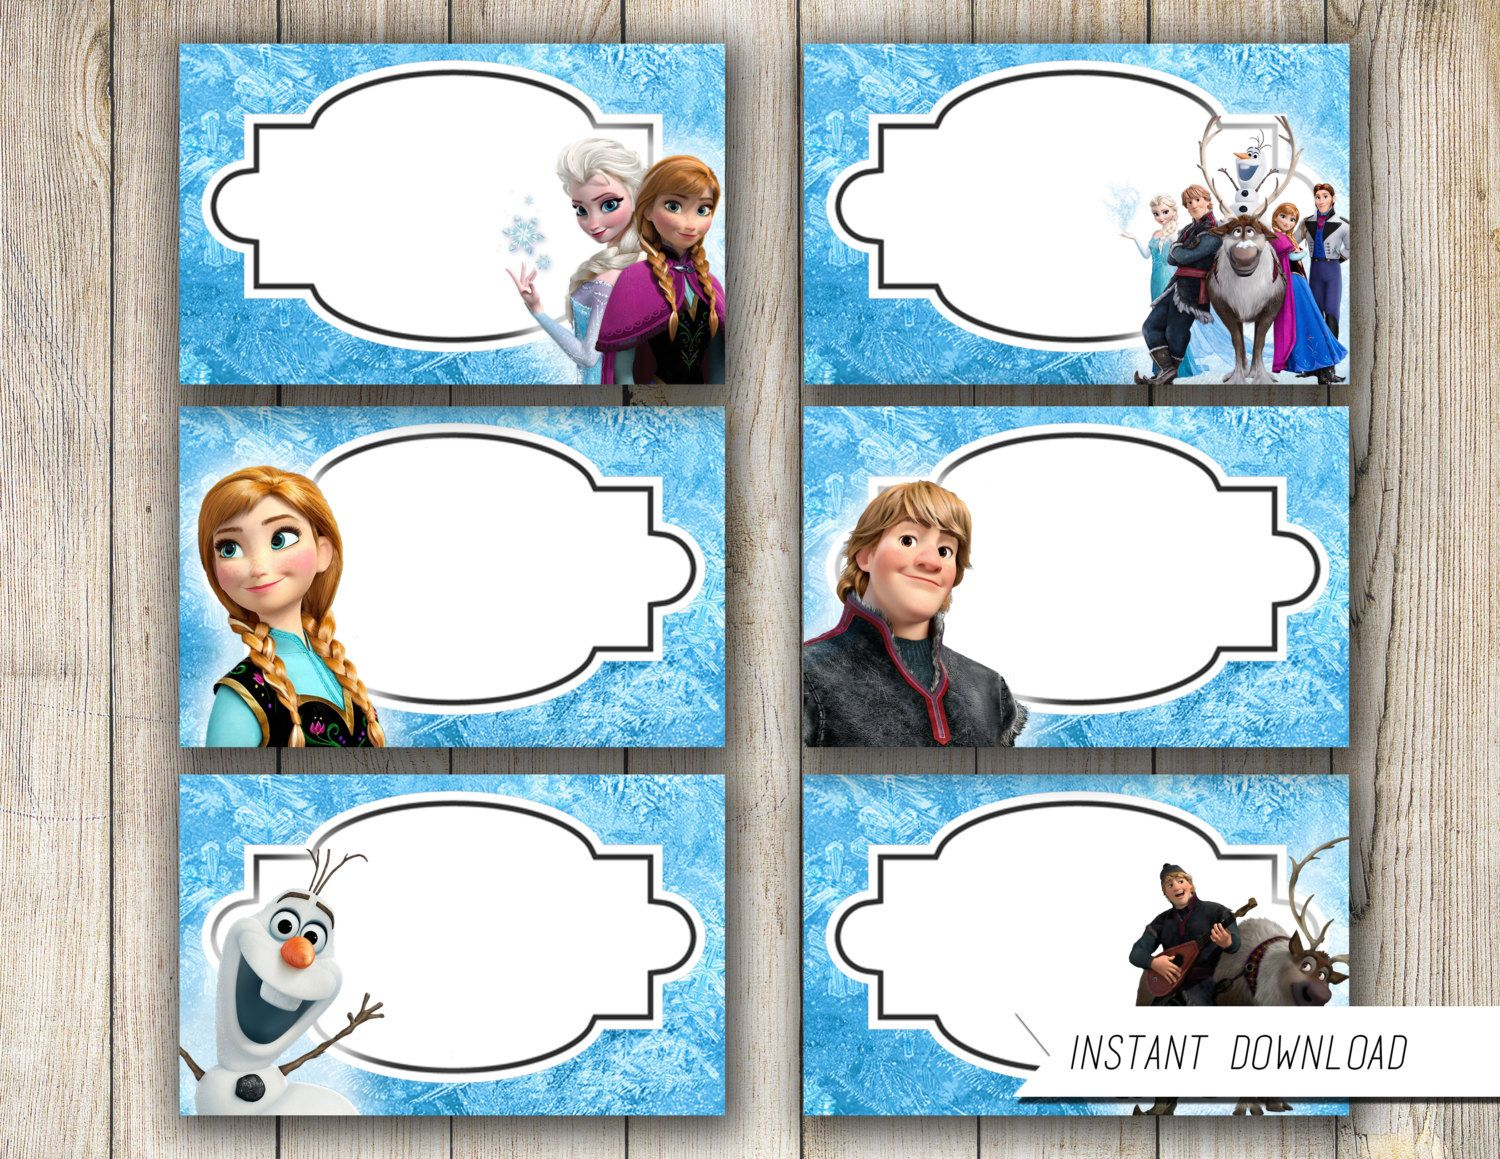 image relating to Frozen Party Food Labels Free Printable named Picture final result for frozen get together foodstuff labels no cost printable